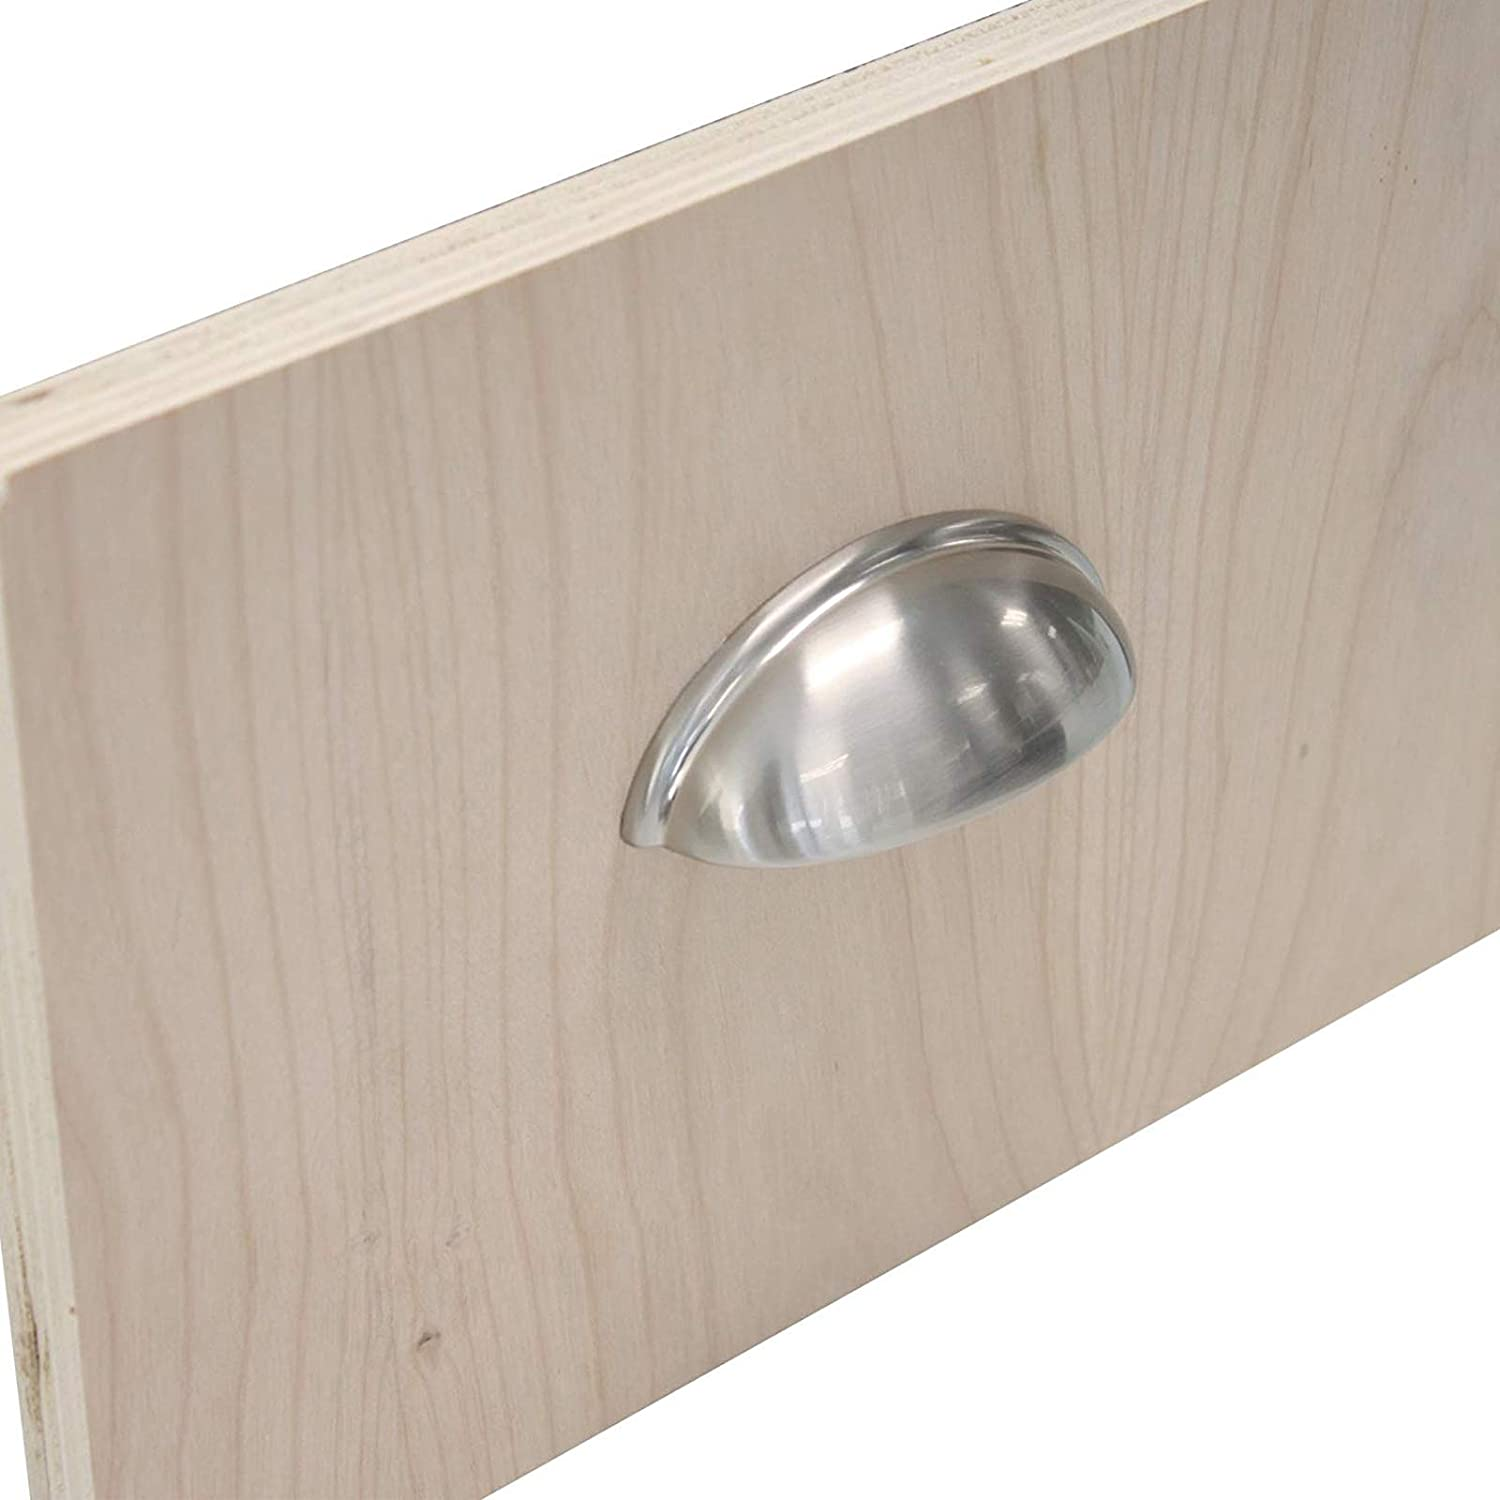 Polished Brass Hole Centers 20 X Probrico Gold Cup Cabinet Door Handles Modern Shell Drawer Pulls 76mm 3 inch